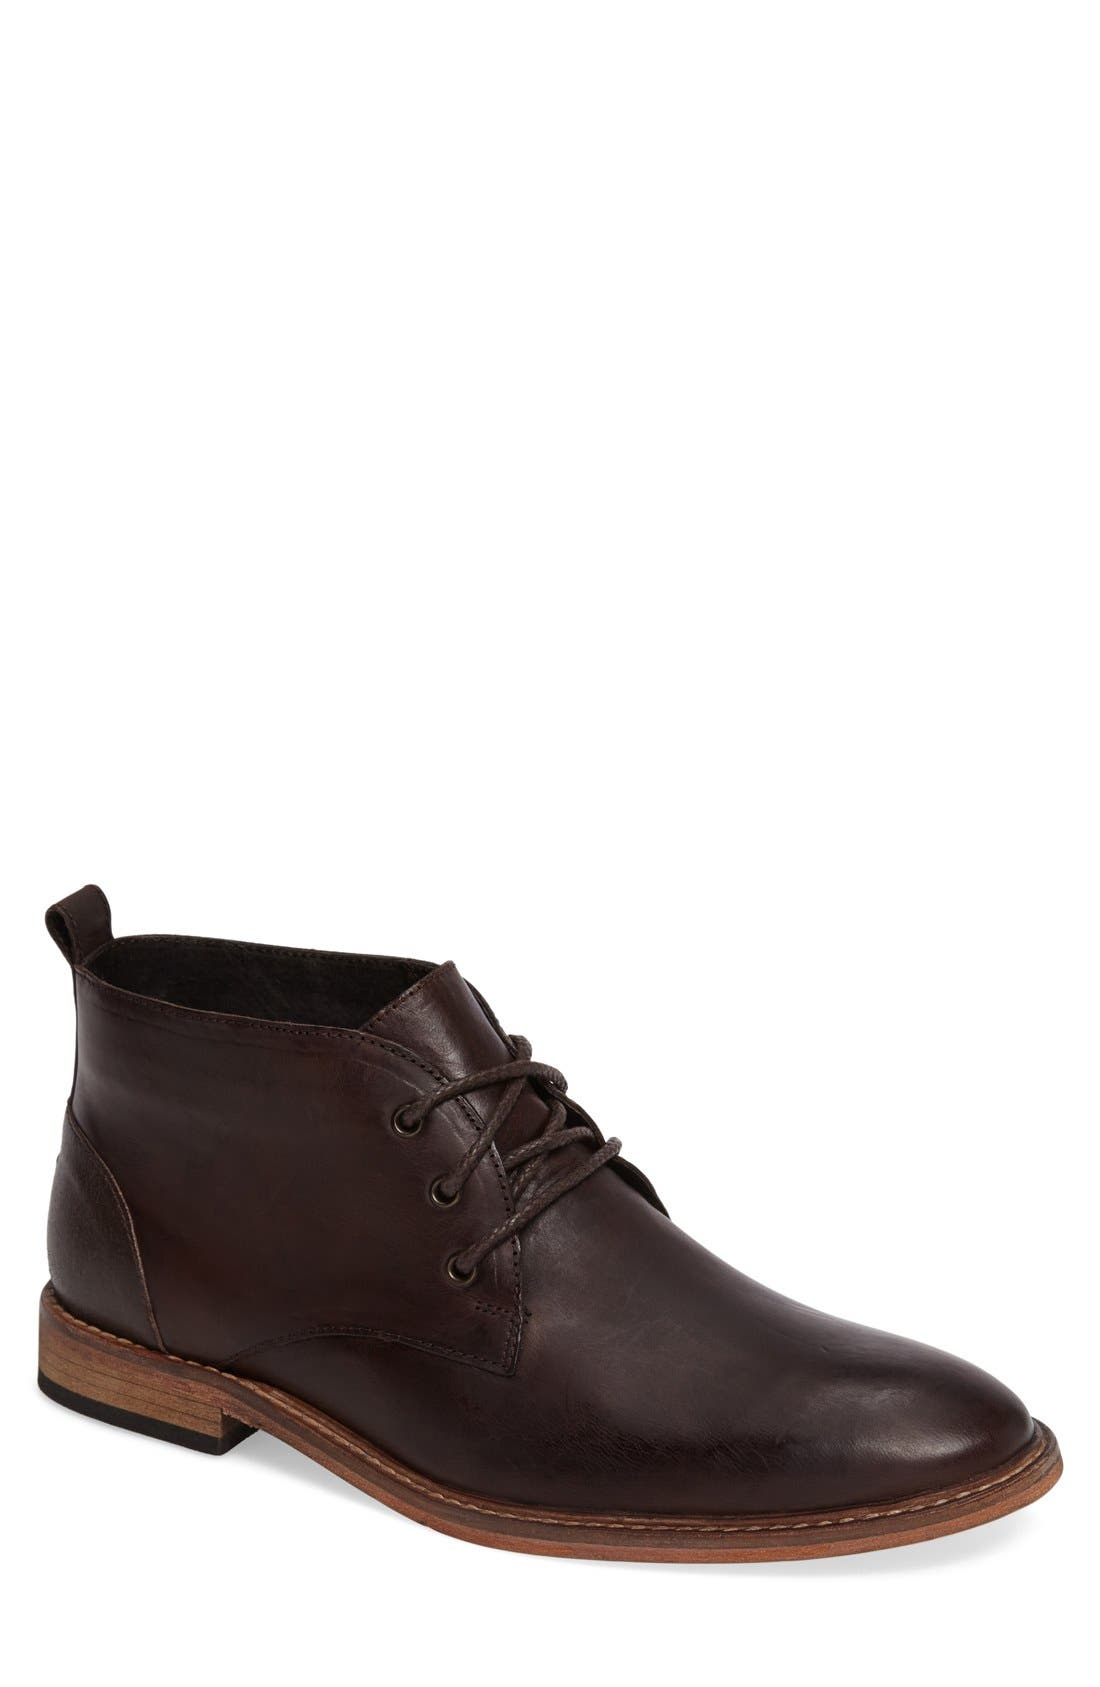 Prove Out Chukka Boot,                         Main,                         color, Brown Leather